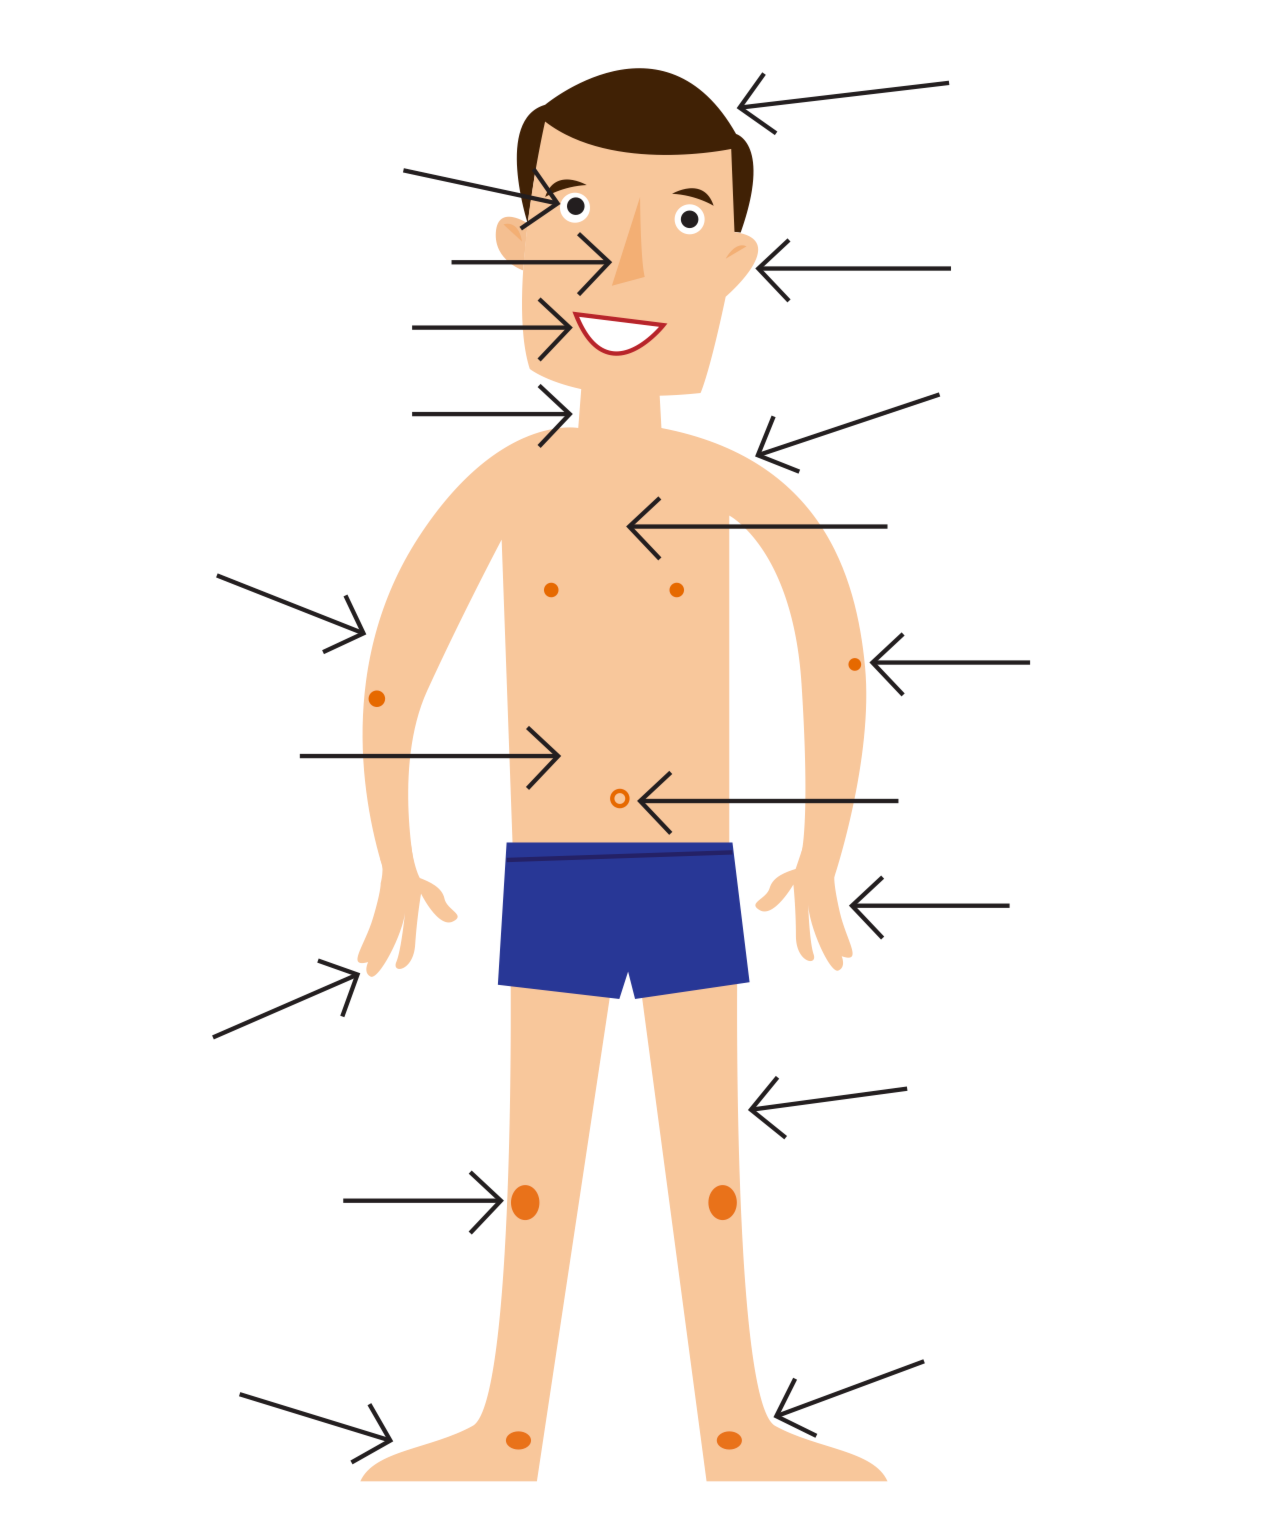 Blank body parts clipart picture library stock Free Body Cliparts, Download Free Clip Art, Free Clip Art on Clipart ... picture library stock